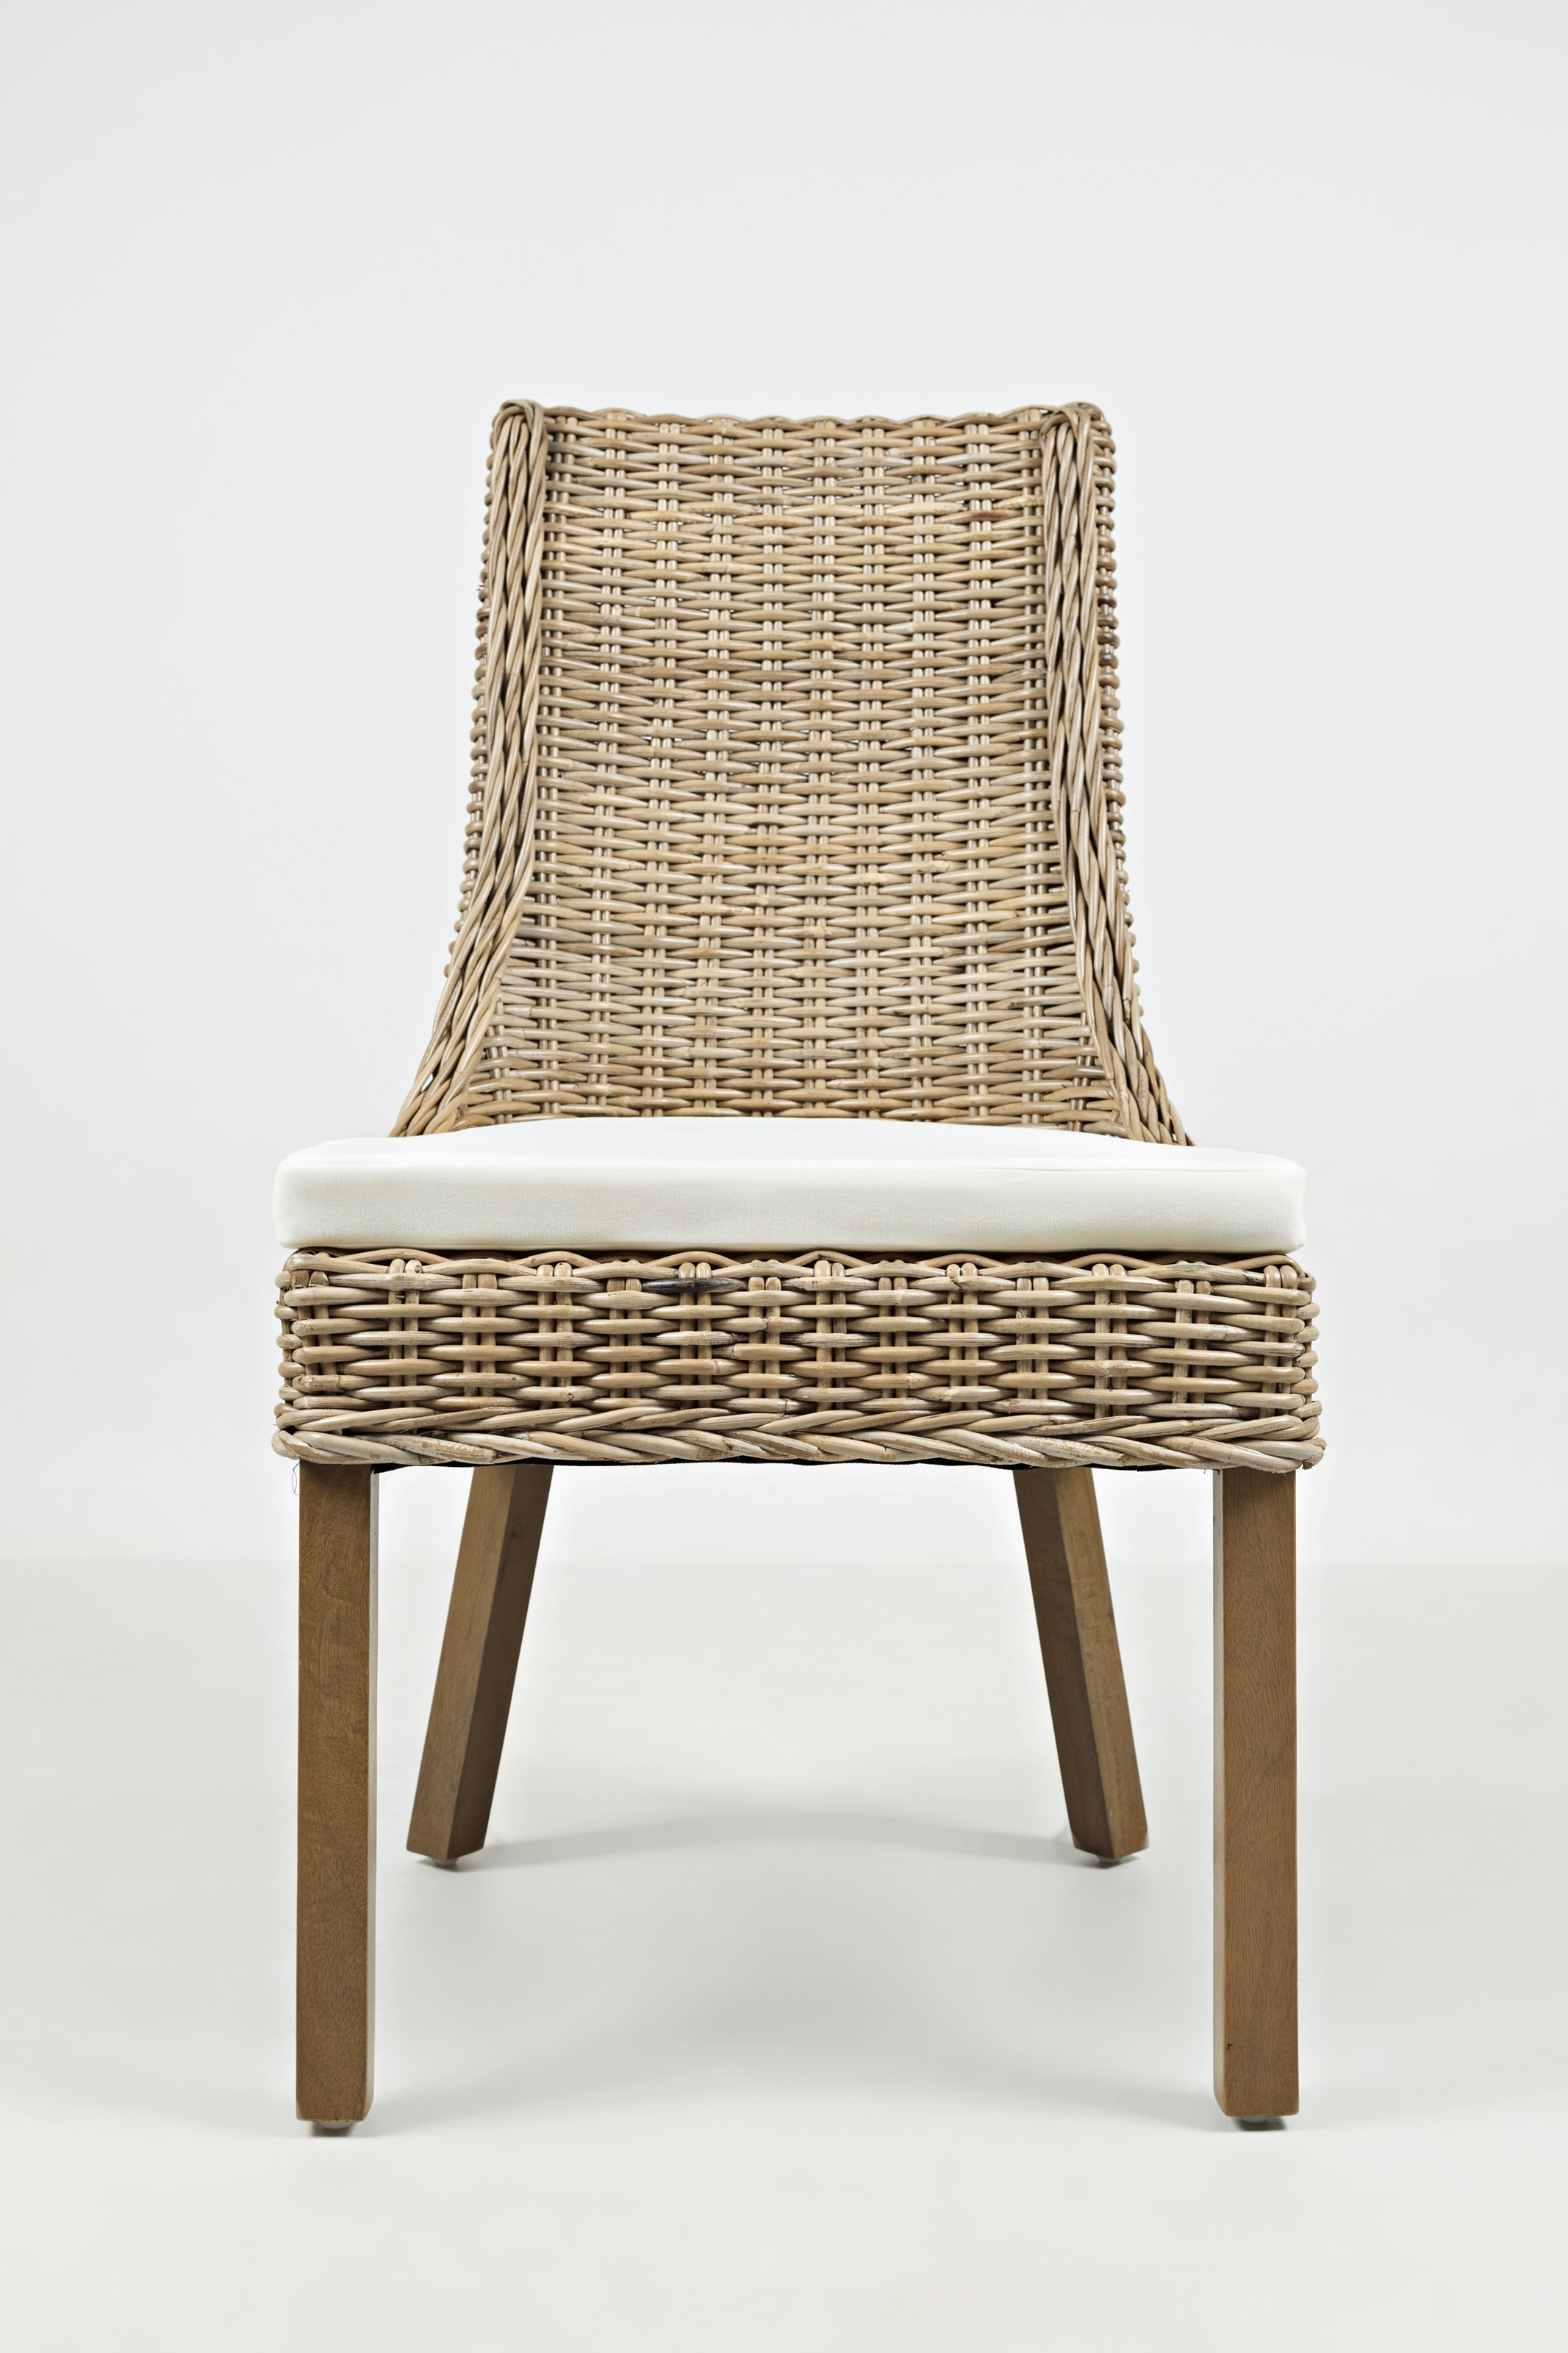 Jofran Hampton Road Rattan Dining Chair with Cushion - Item Number: 872-719KD